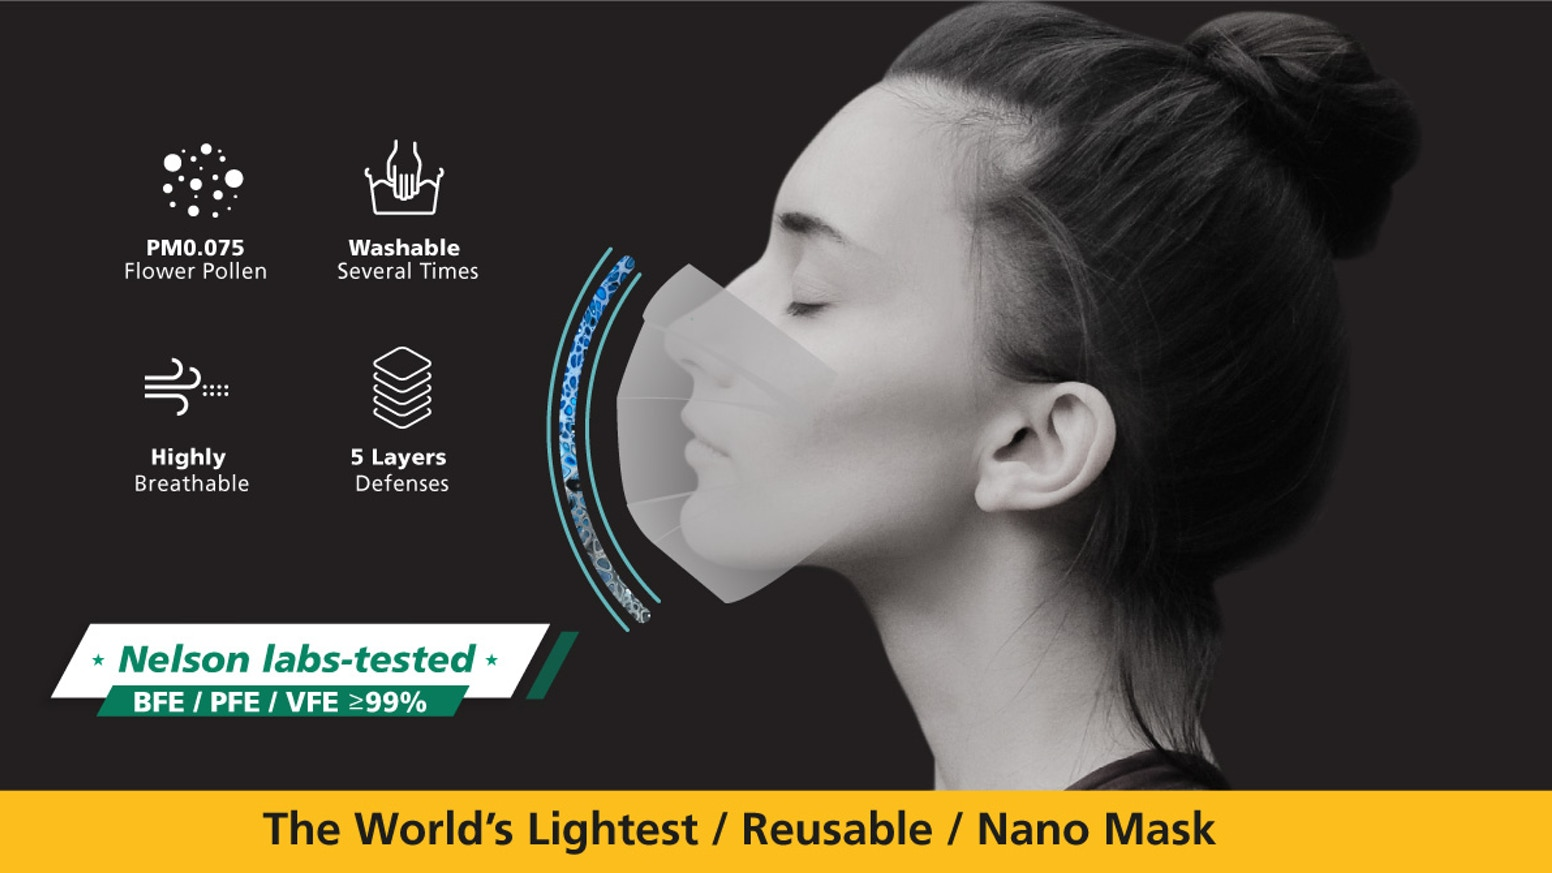 World's Lightest | Reusable up to 5 times | ≥ 99% Superior Filtration l PM0.075 Efficient protection